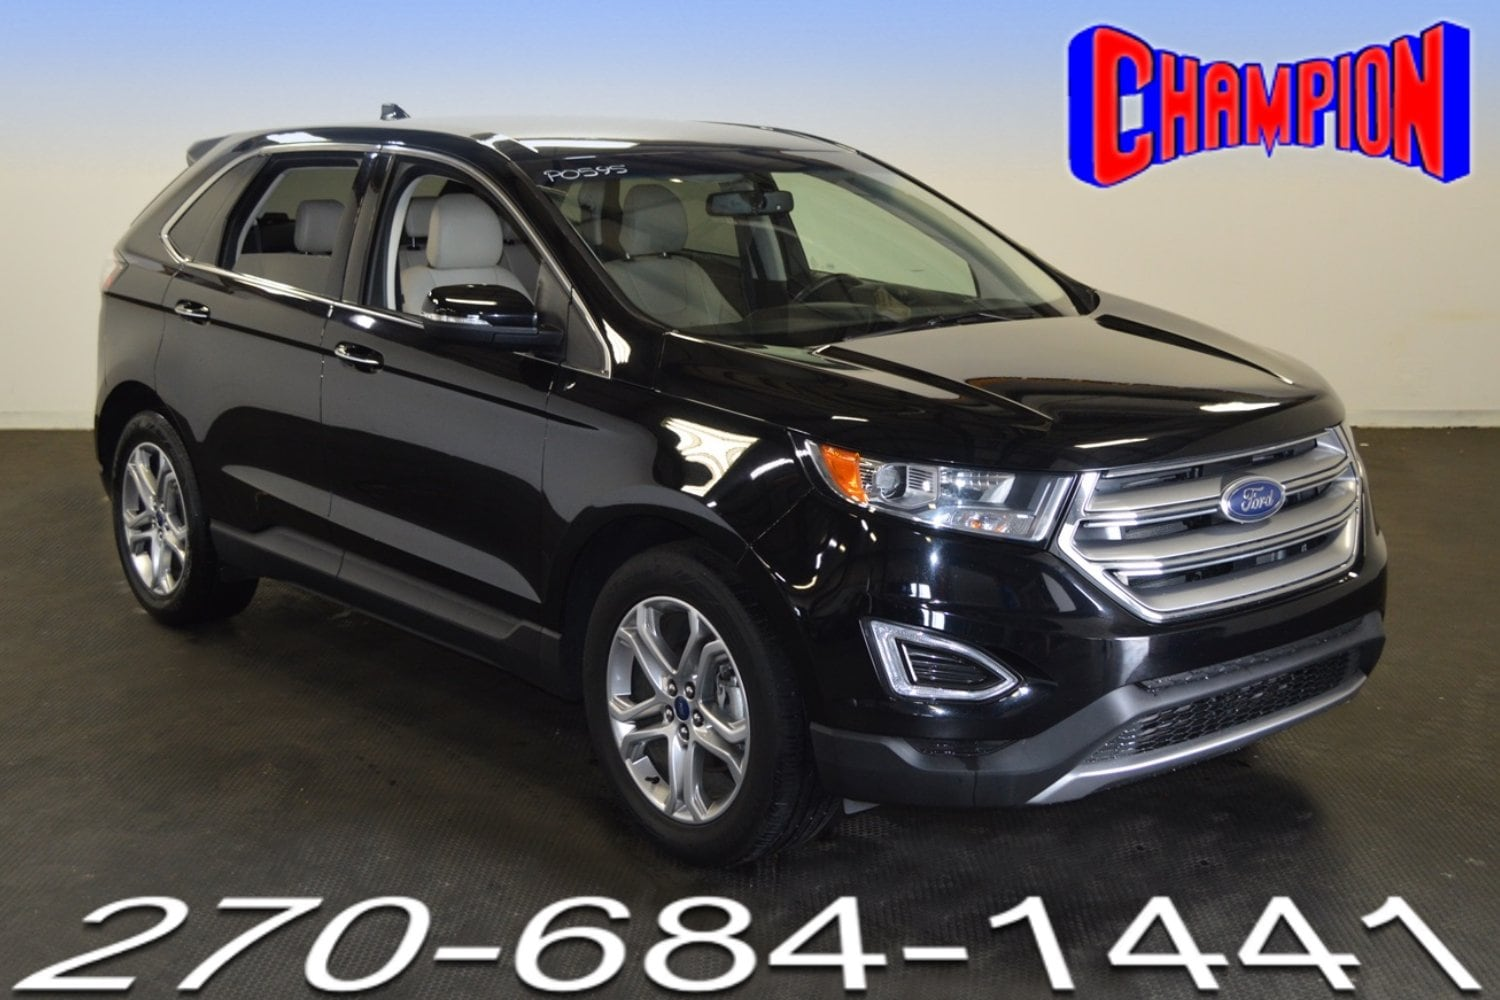 Champion Ford Owensboro Ky >> Used 2018 Ford Edge For Sale At Champion Ford Lincoln Inc Vin